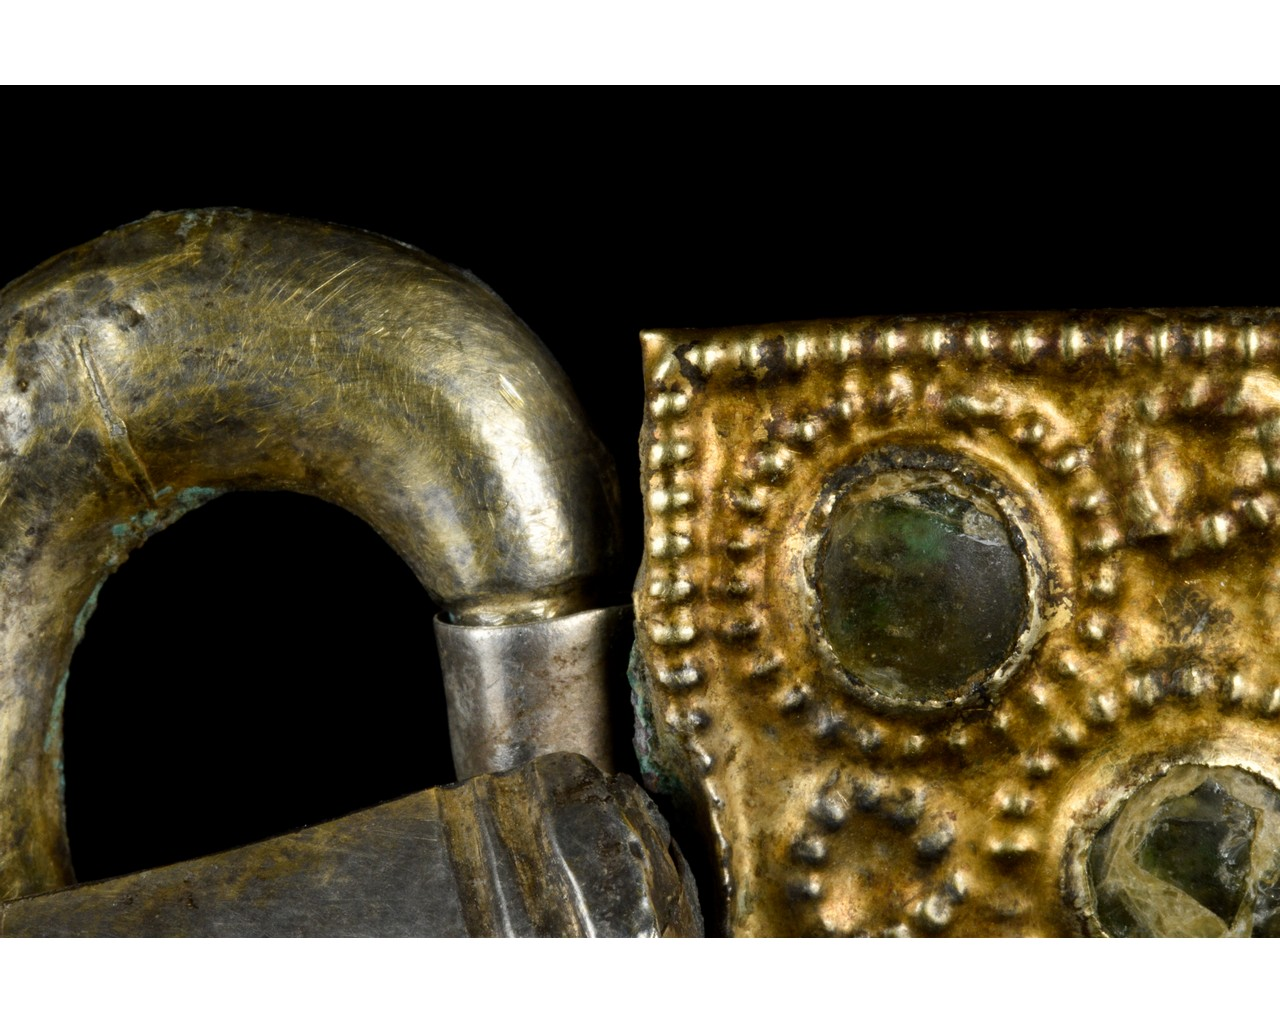 MEDIEVAL MEROVINGIAN SILVER BUCKLE WITH GEMS - Image 6 of 6